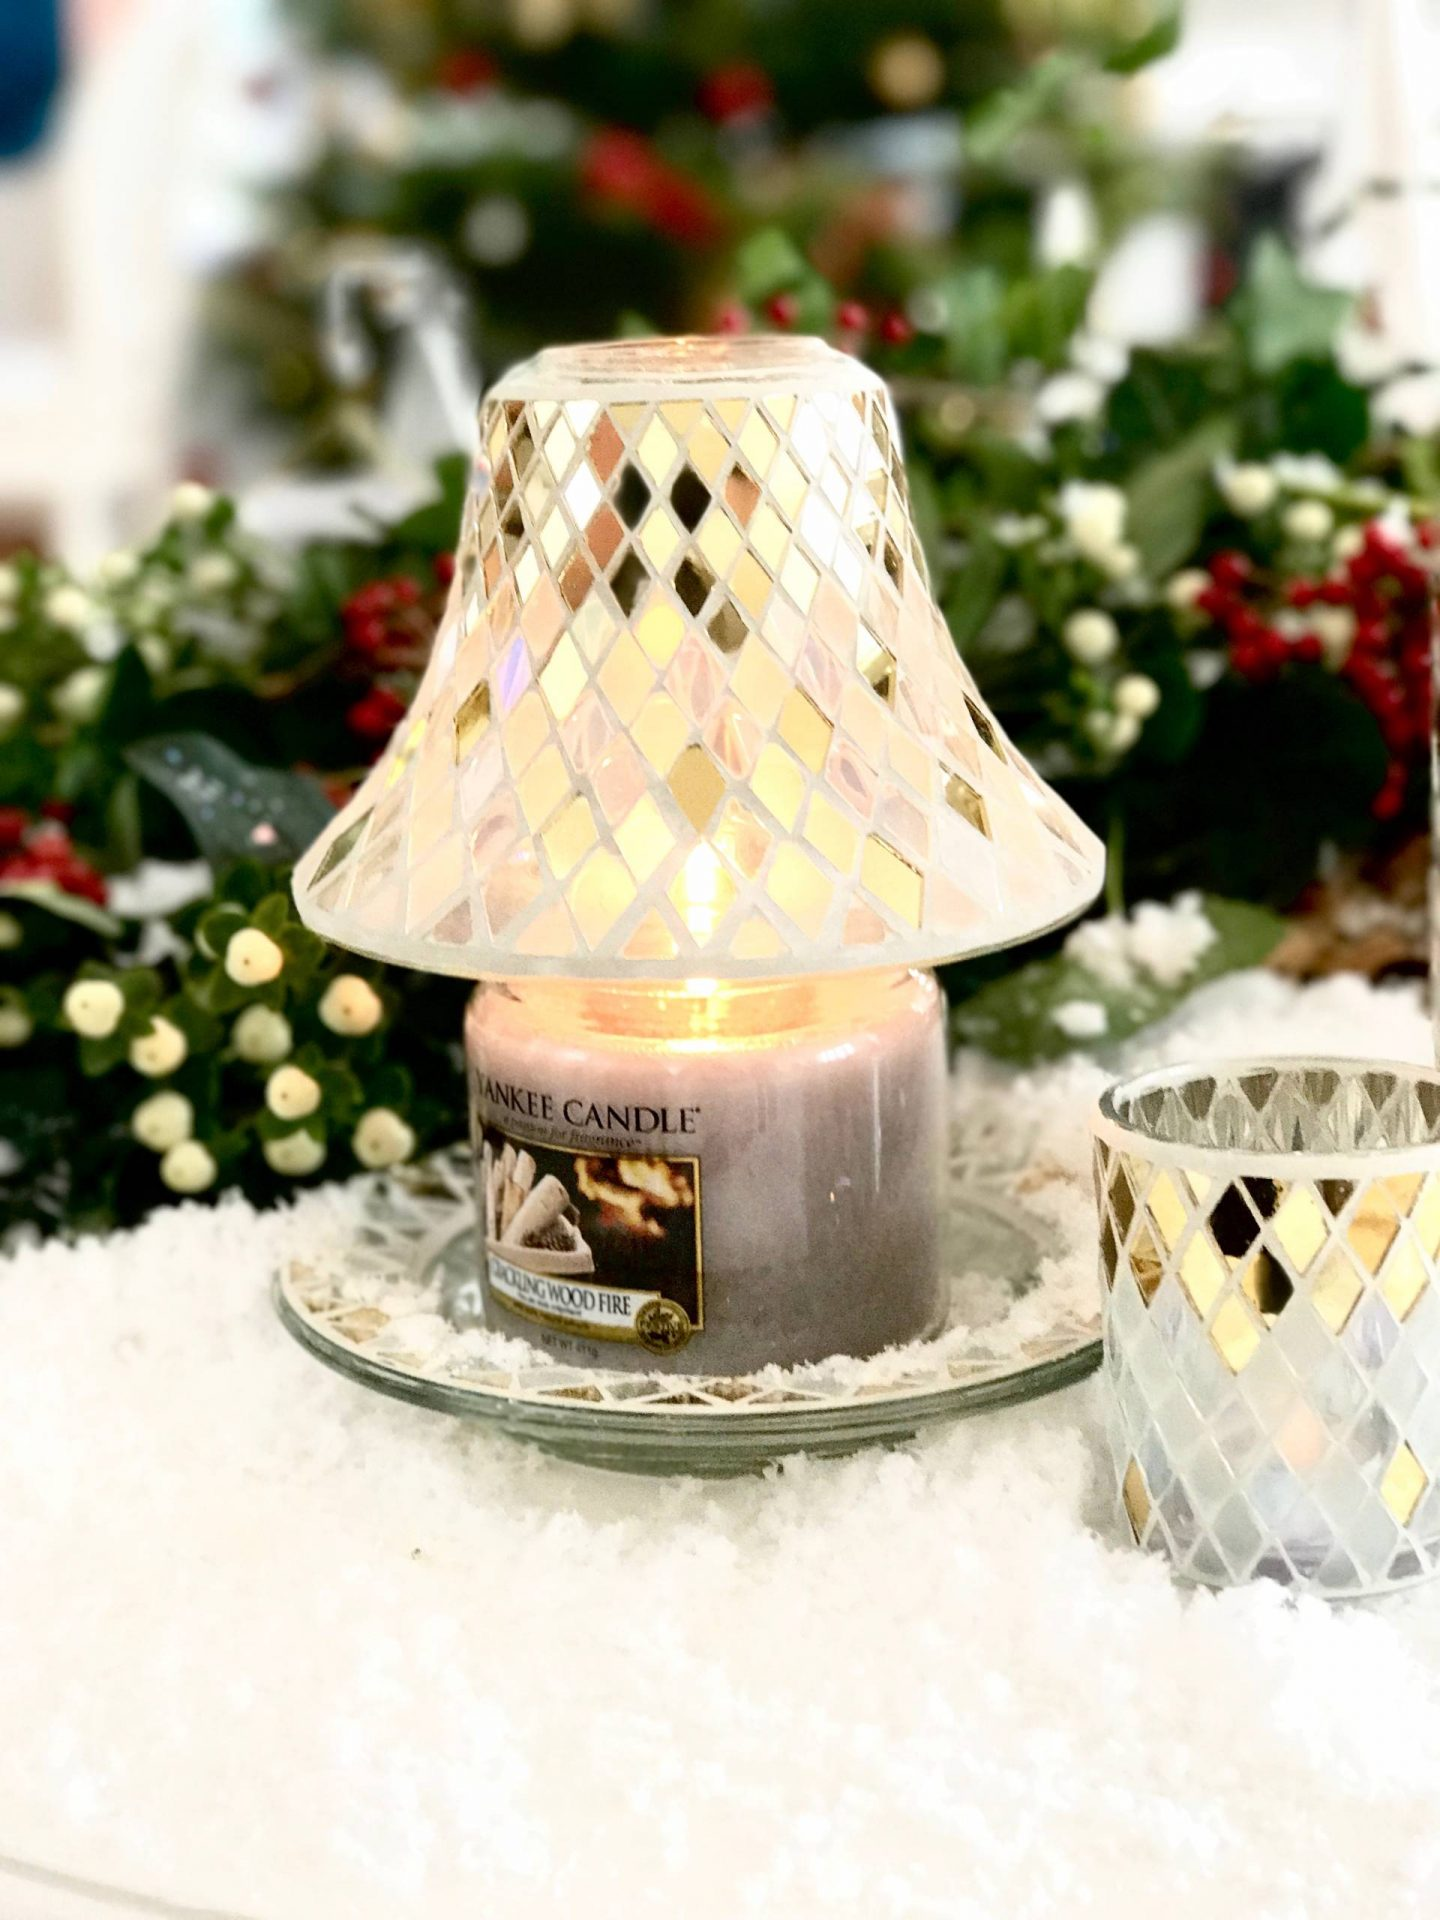 A Sneak Preview Of Yankee Candle Christmas Products